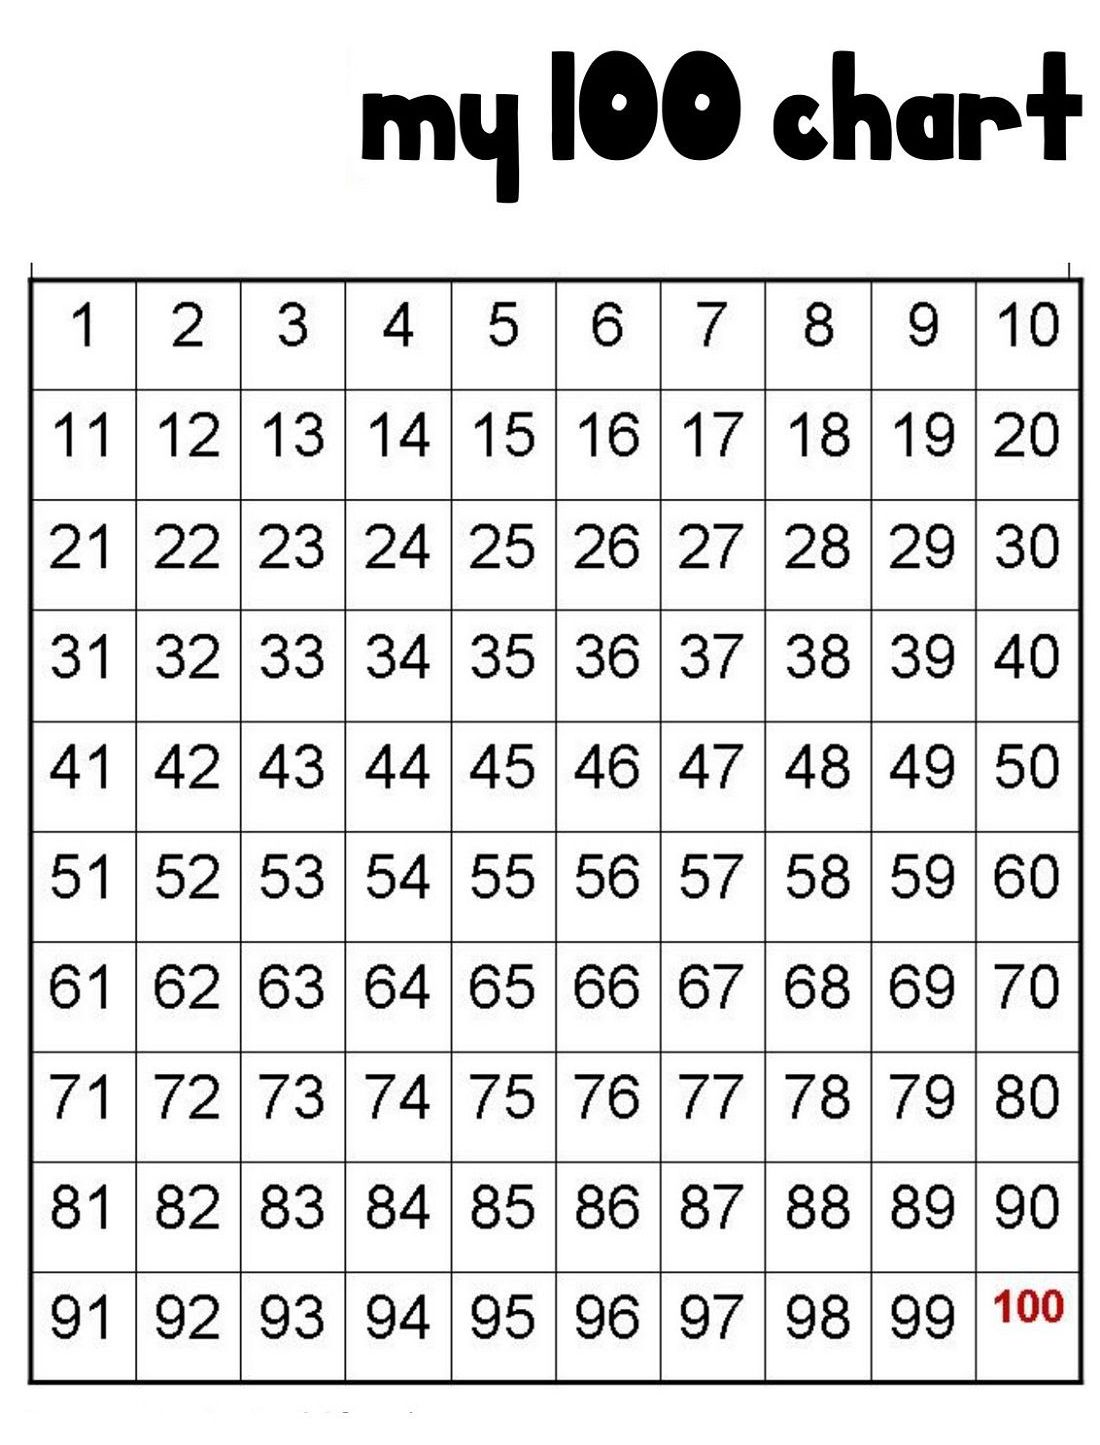 Printable 1 To 100 Number Chart Counting Free